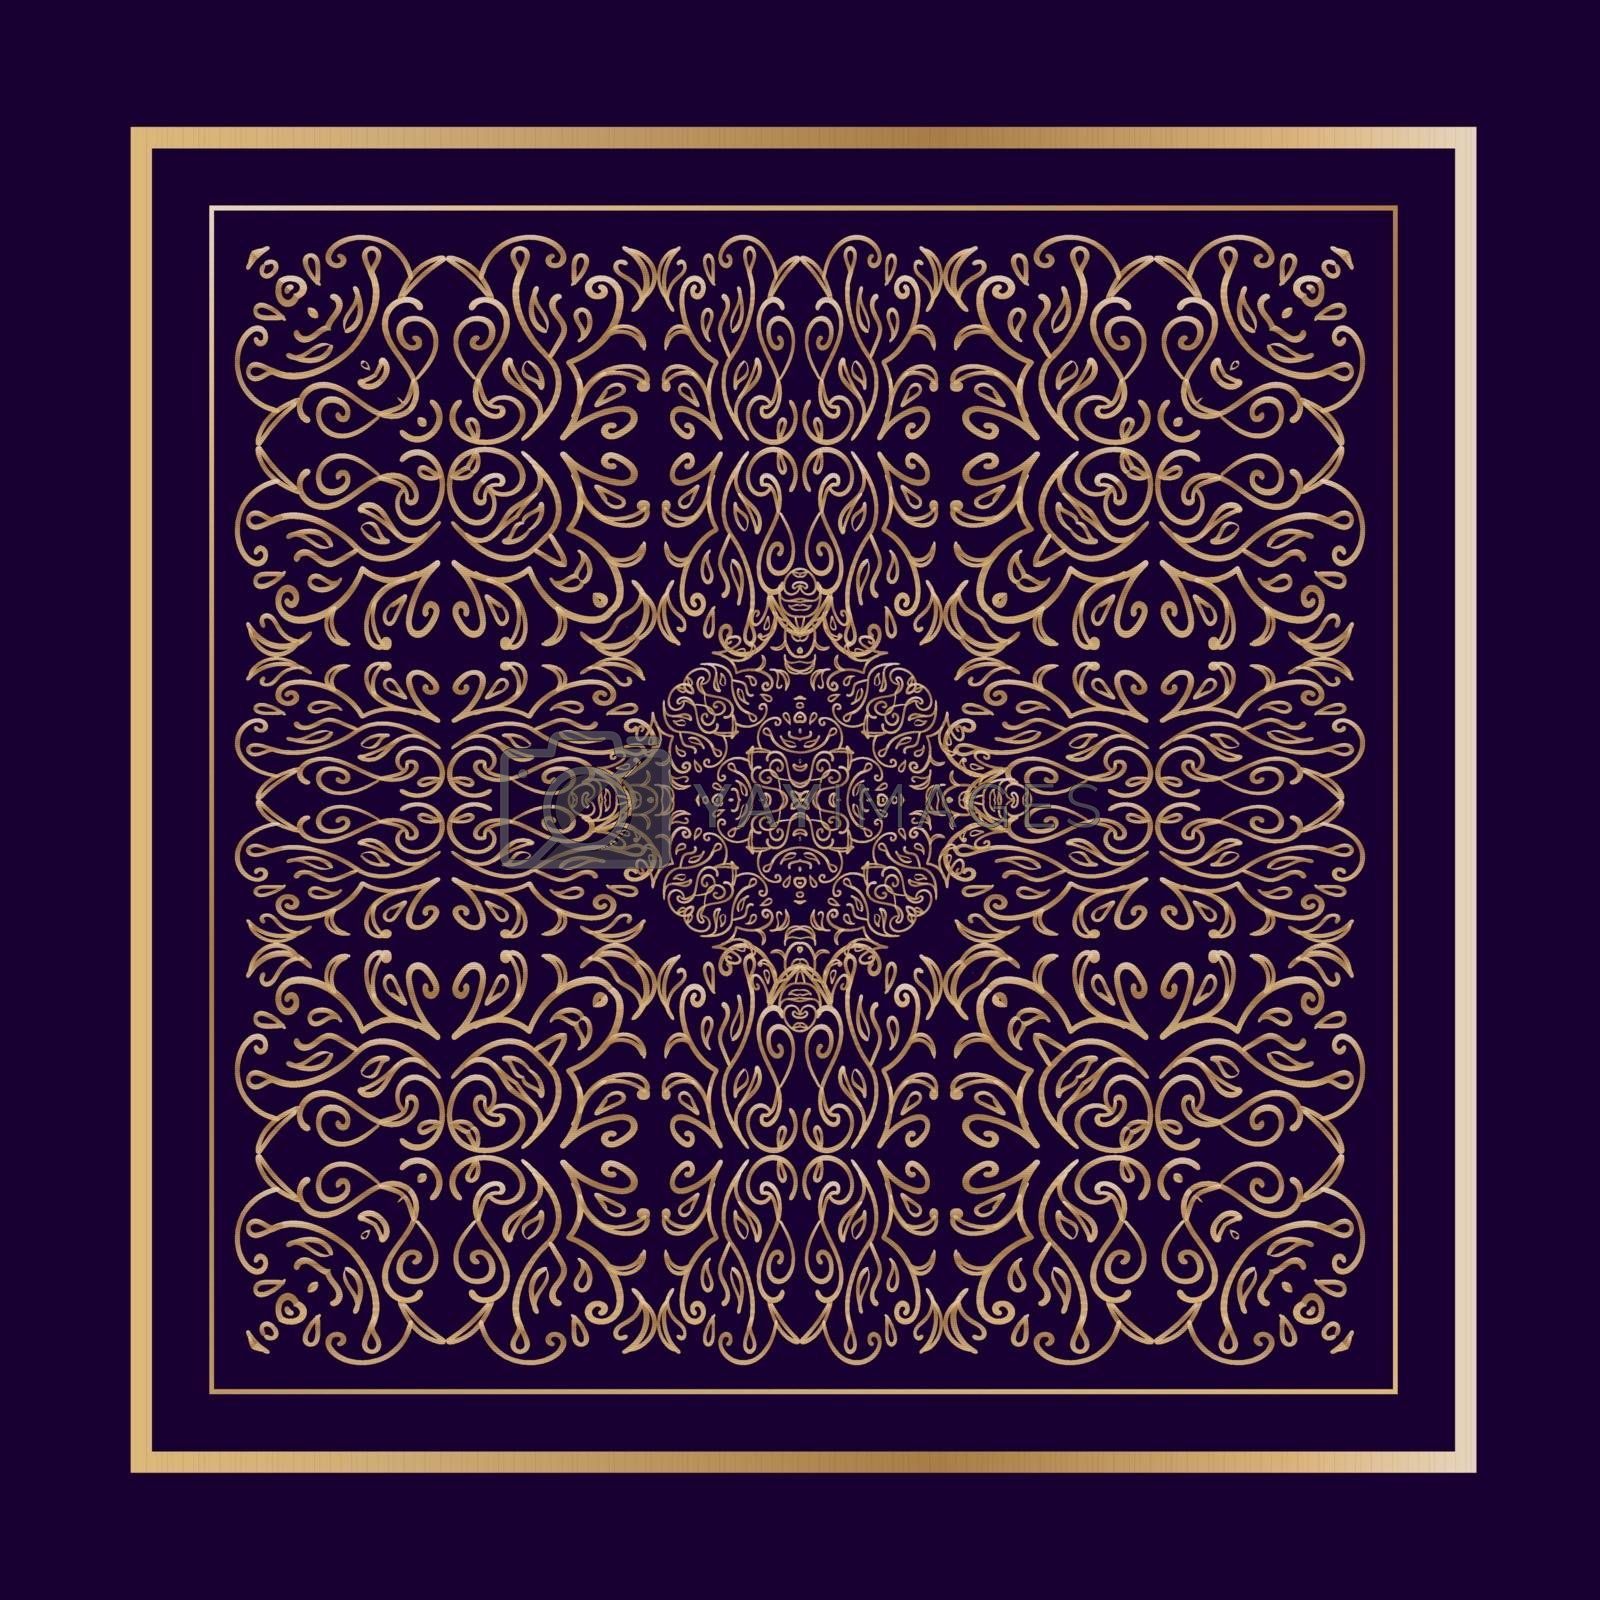 Beautiful filigree golden ornamented square in eastern style on dark purple background